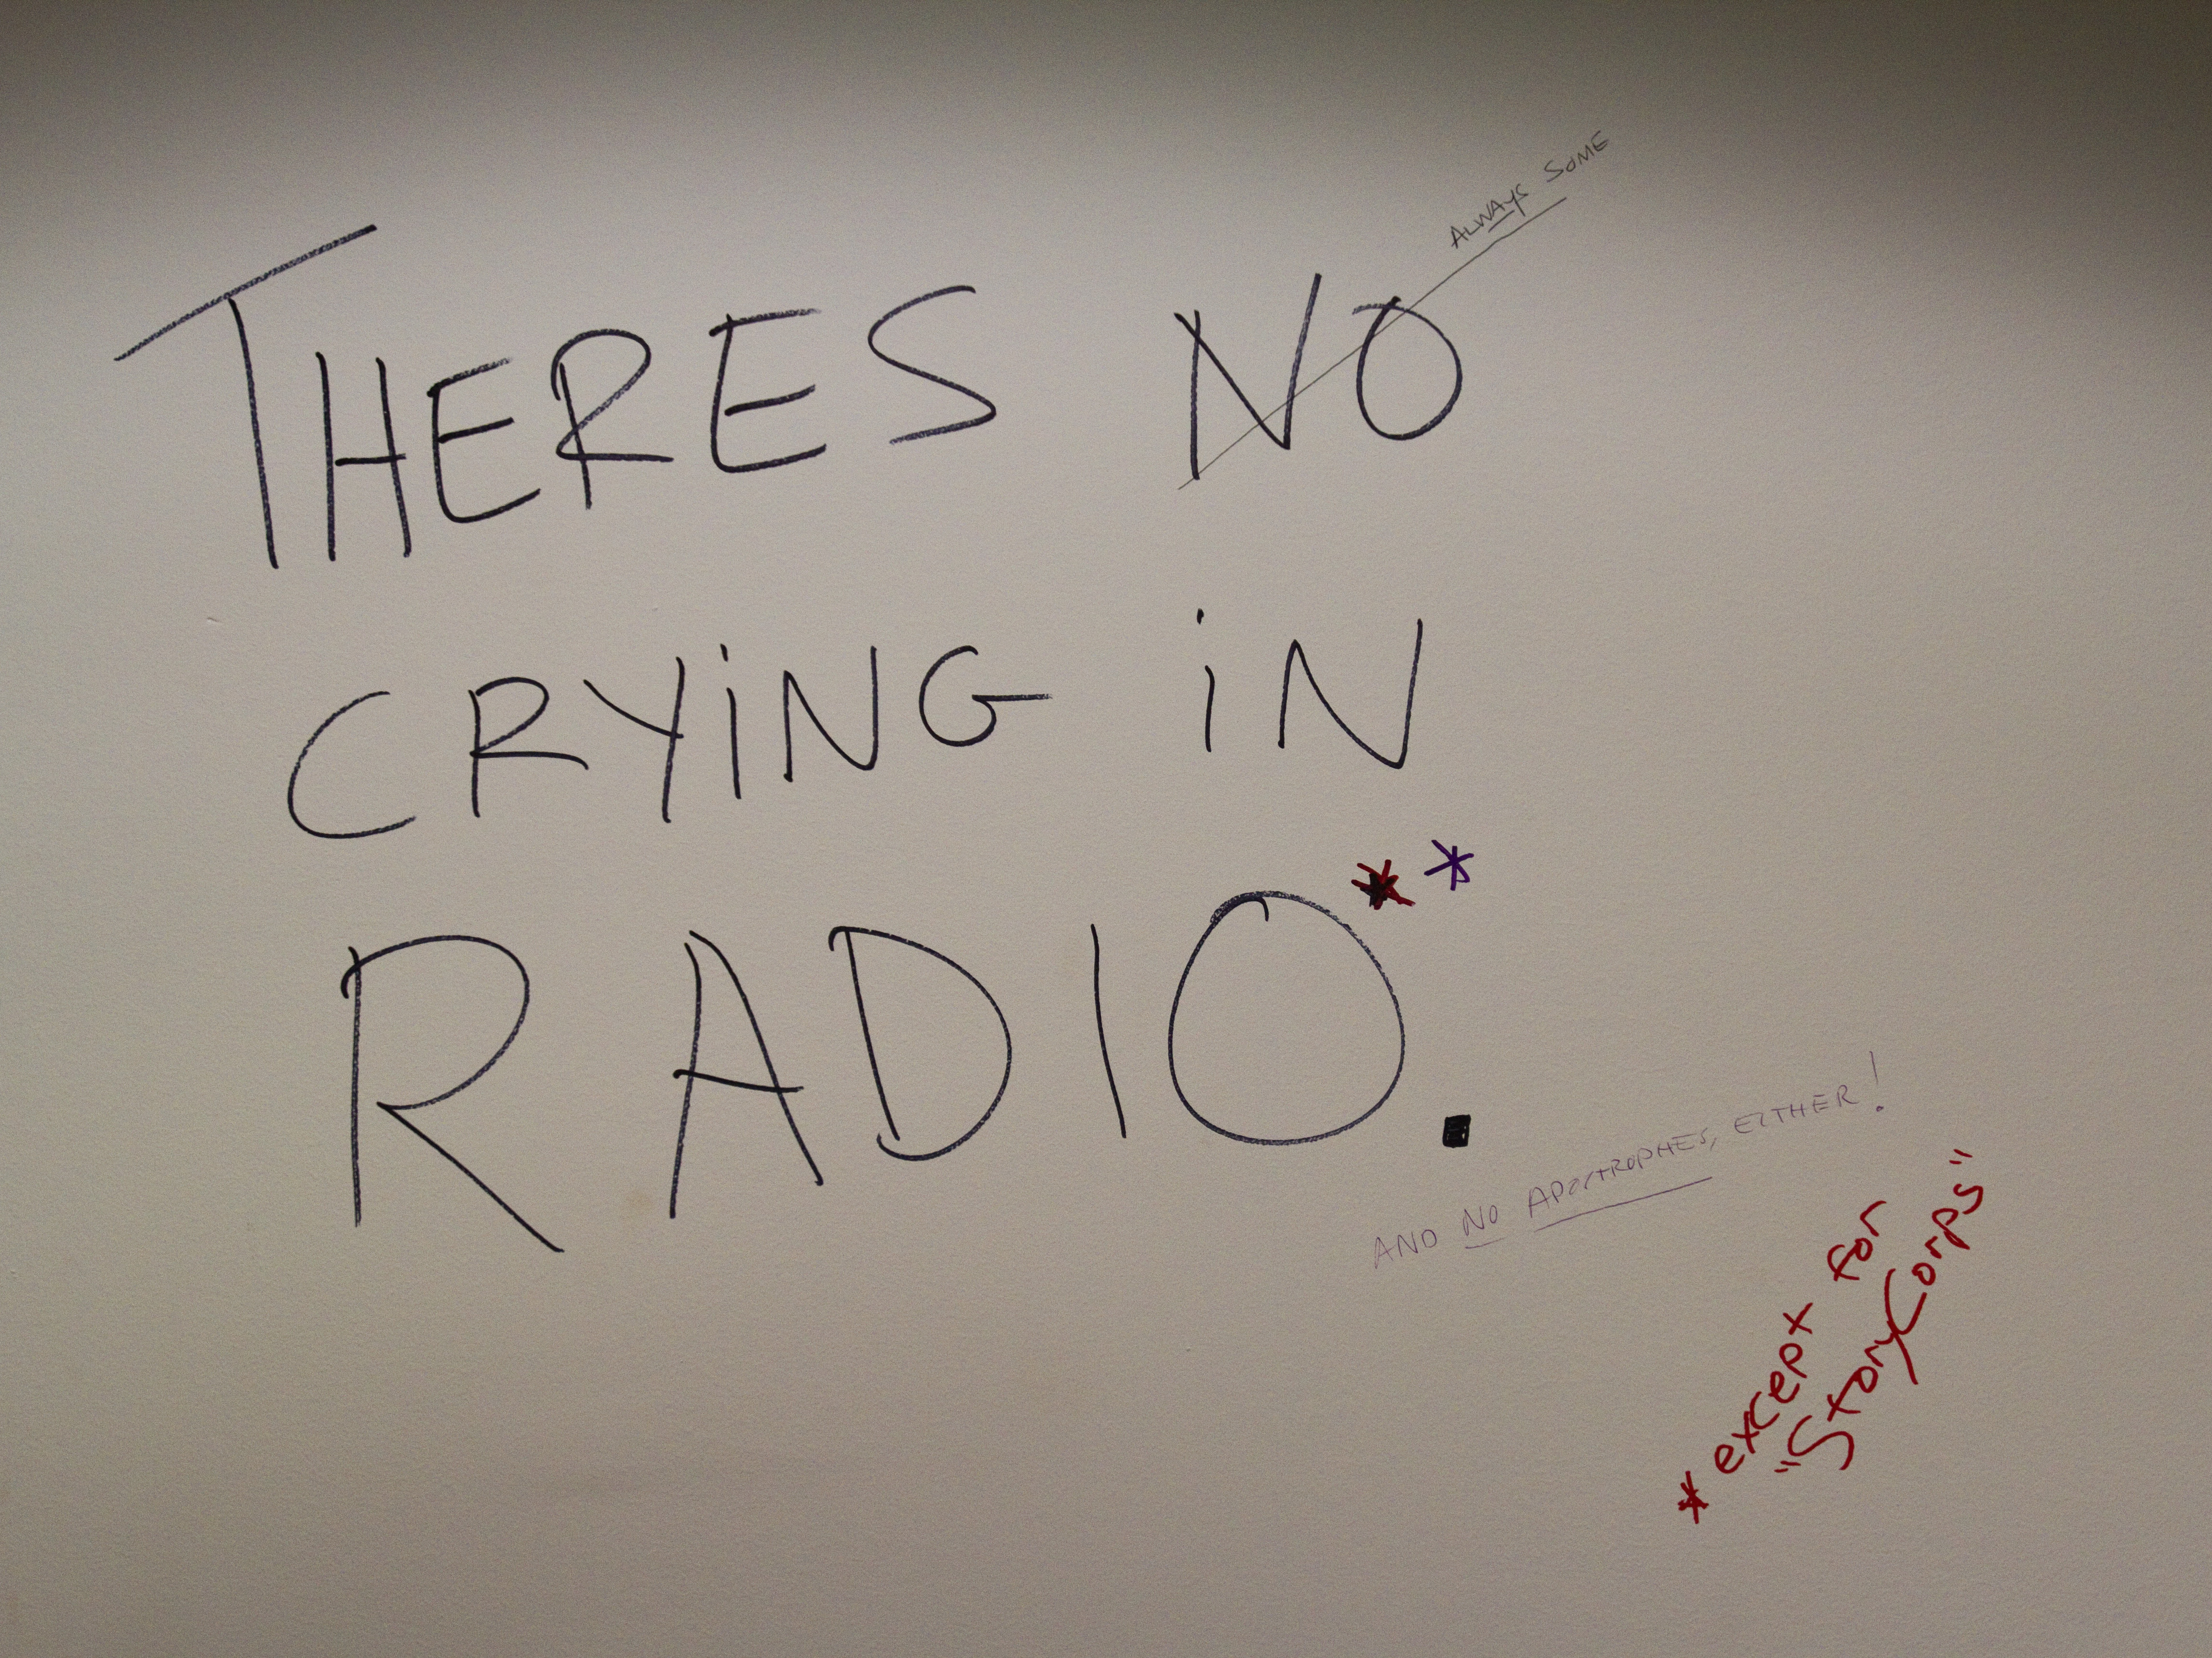 """""""There's no crying in radio. (Except for StoryCorps)"""" - one of the messages cast on the wall of our old building in its final days as NPR headquarters."""